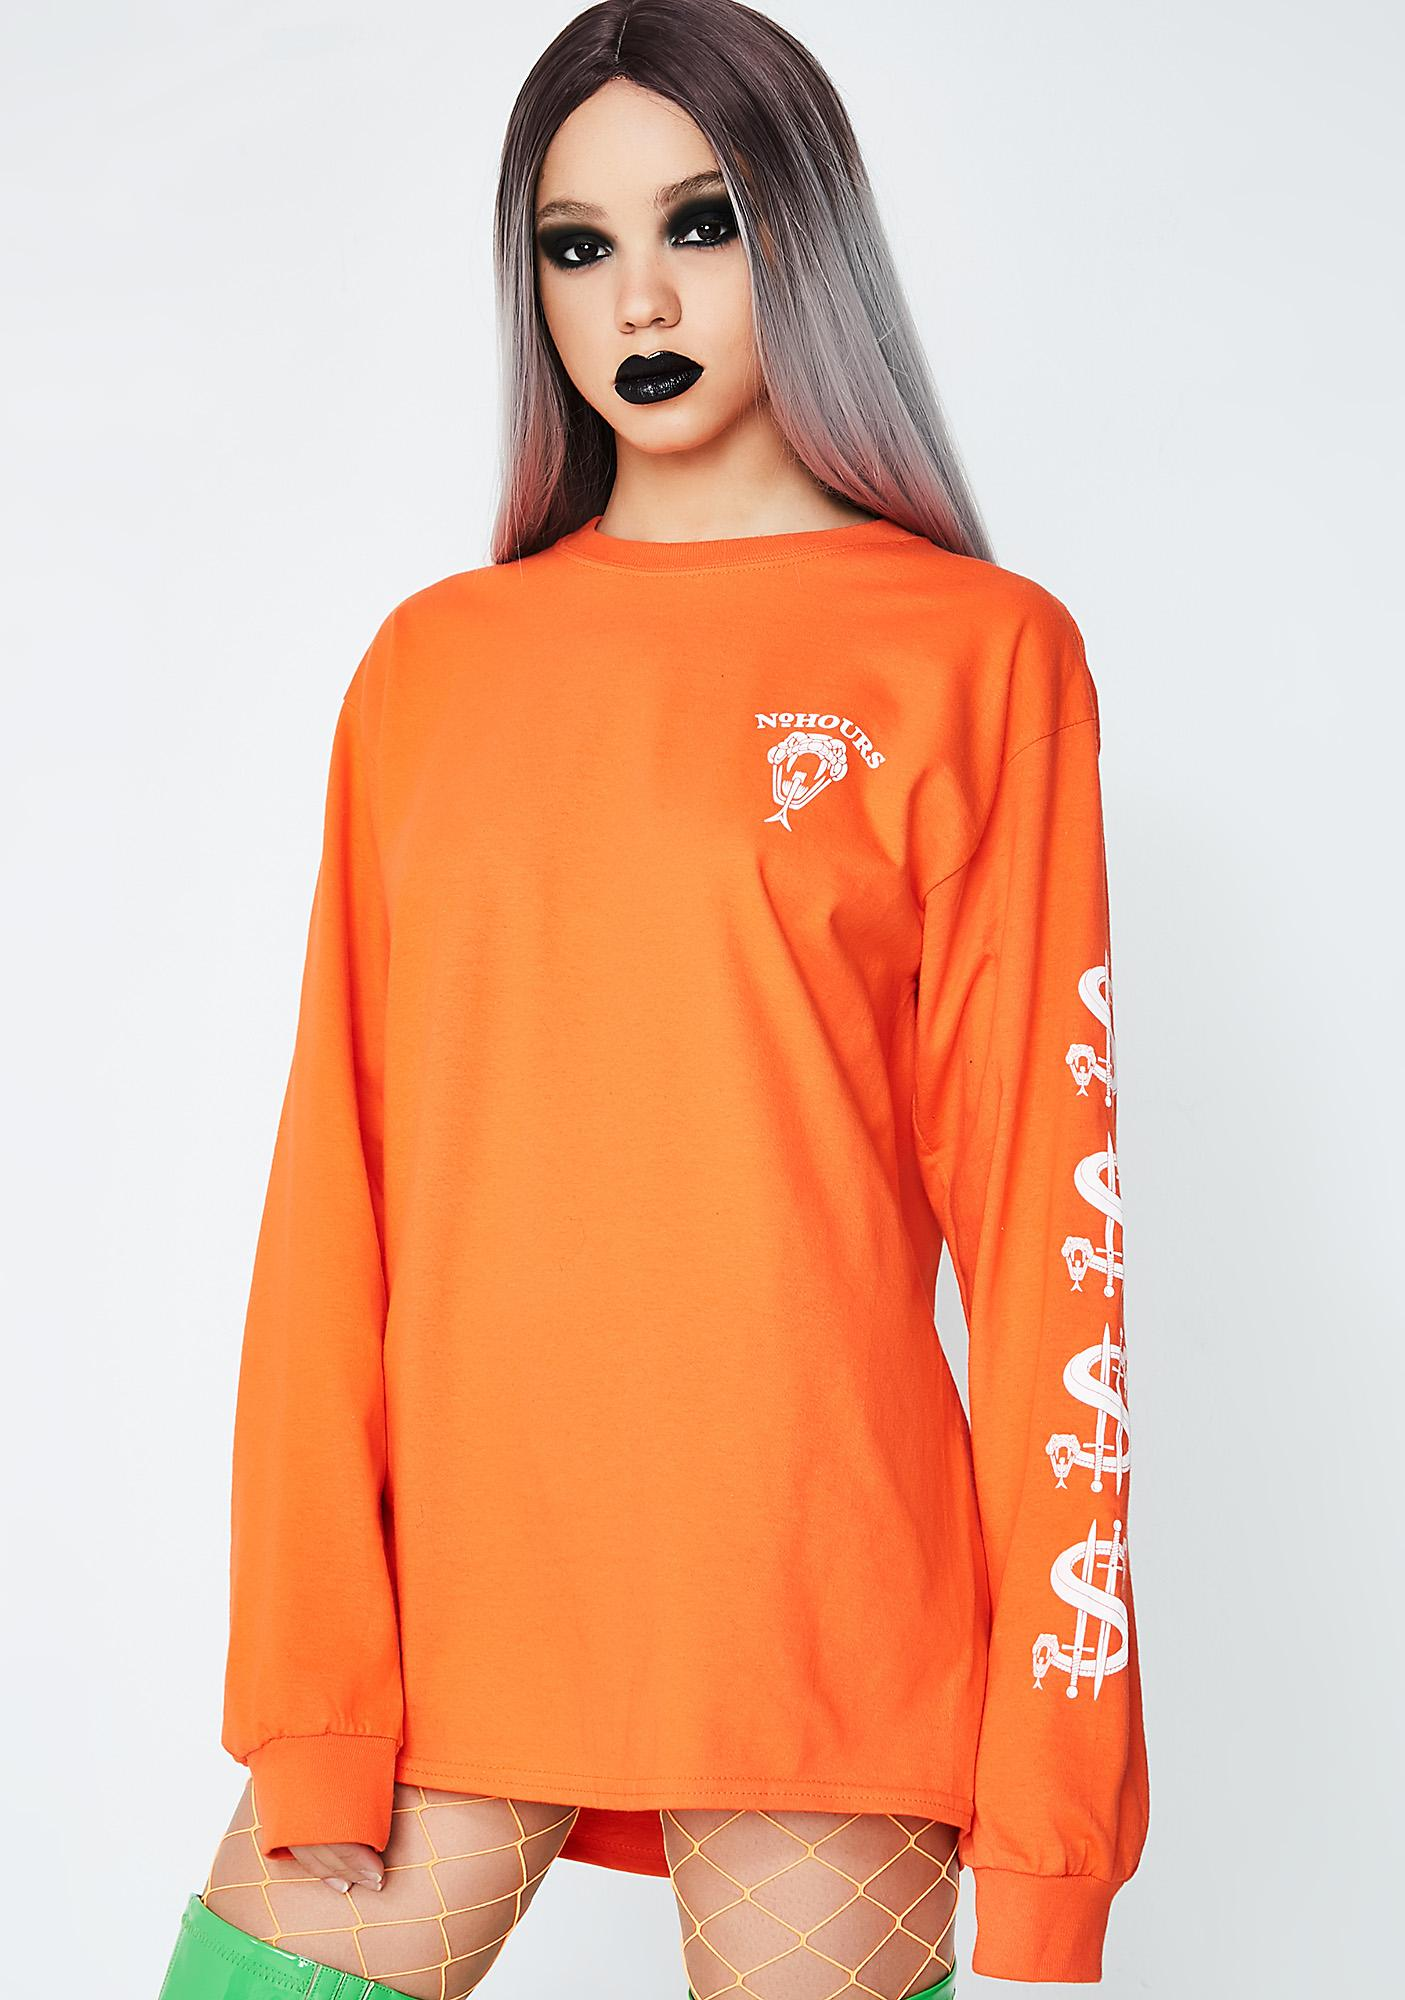 No Hours Debt Snake Long Sleeve